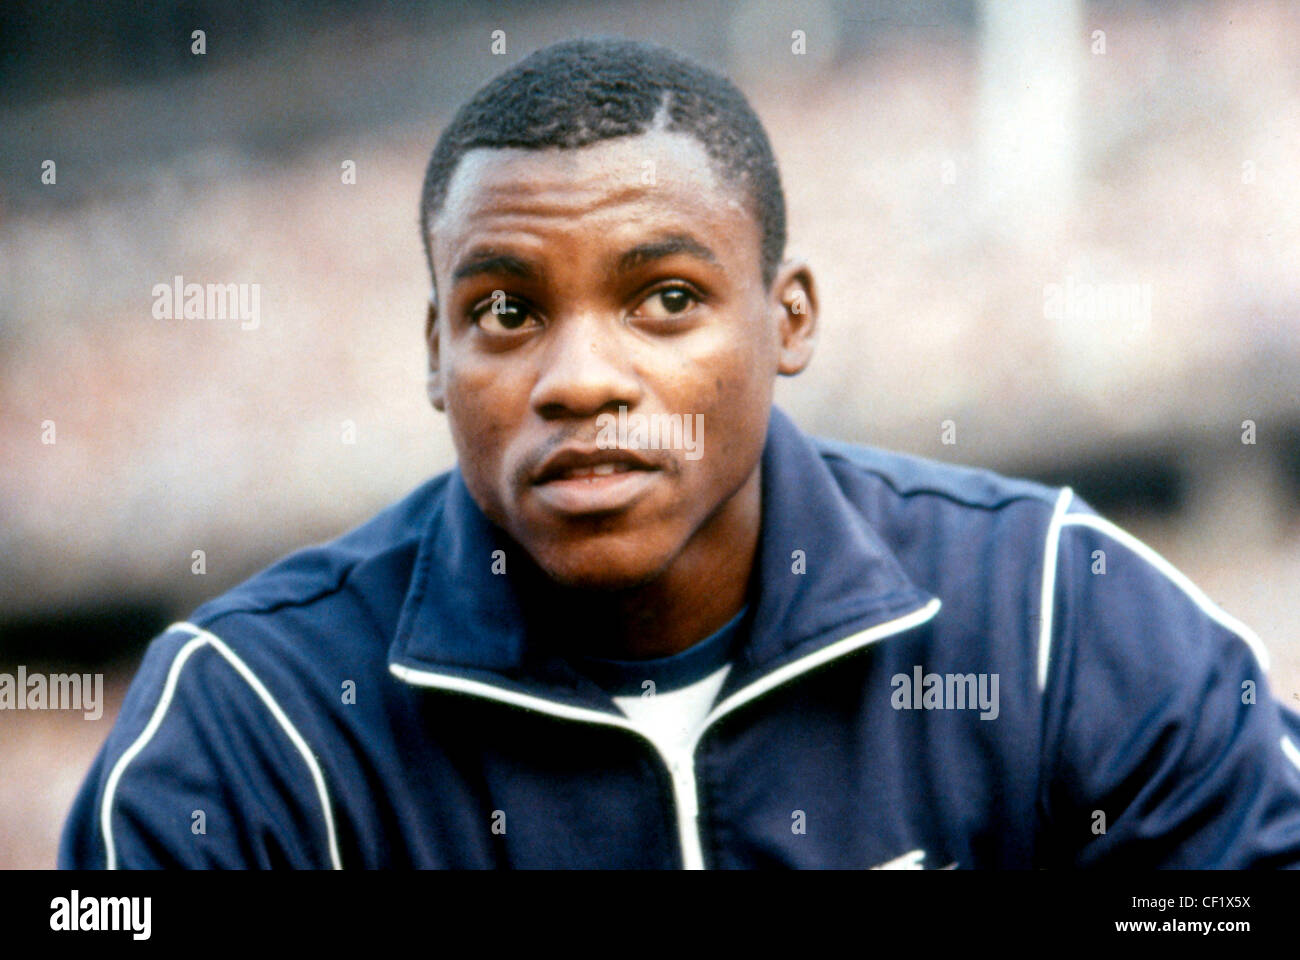 Carl Lewis - *01.07.1961: American athlete, Olympic champion, sprinter and long-jumper. Portrait at the Istaf in - Stock Image